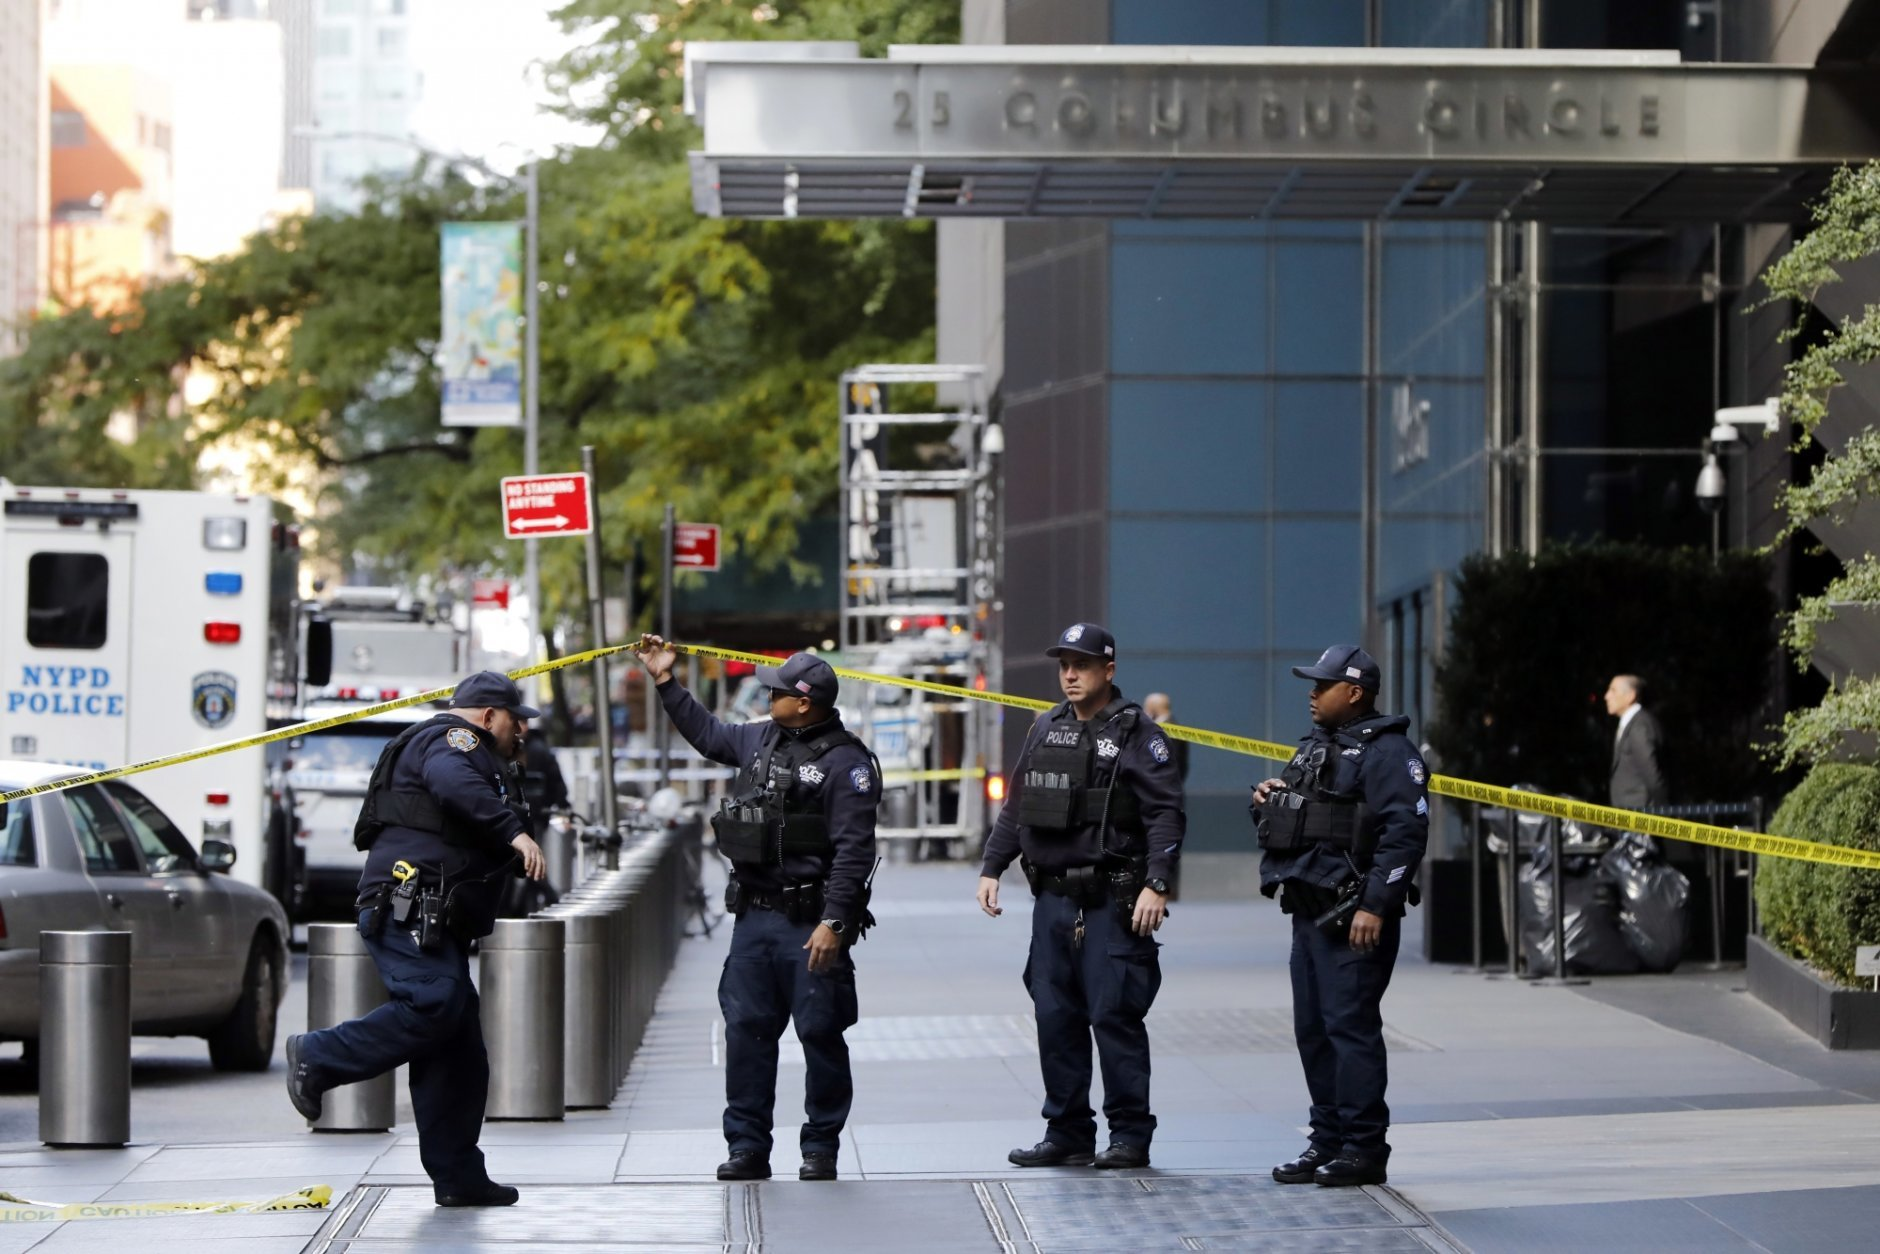 New York City Police Dept. officers arrive outside the Time Warner Center, in New York, Wednesday, Oct. 24, 2018. A police bomb squad was sent to CNN's offices in New York City and the newsroom was evacuated because of a suspicious package. (AP Photo/Richard Drew)